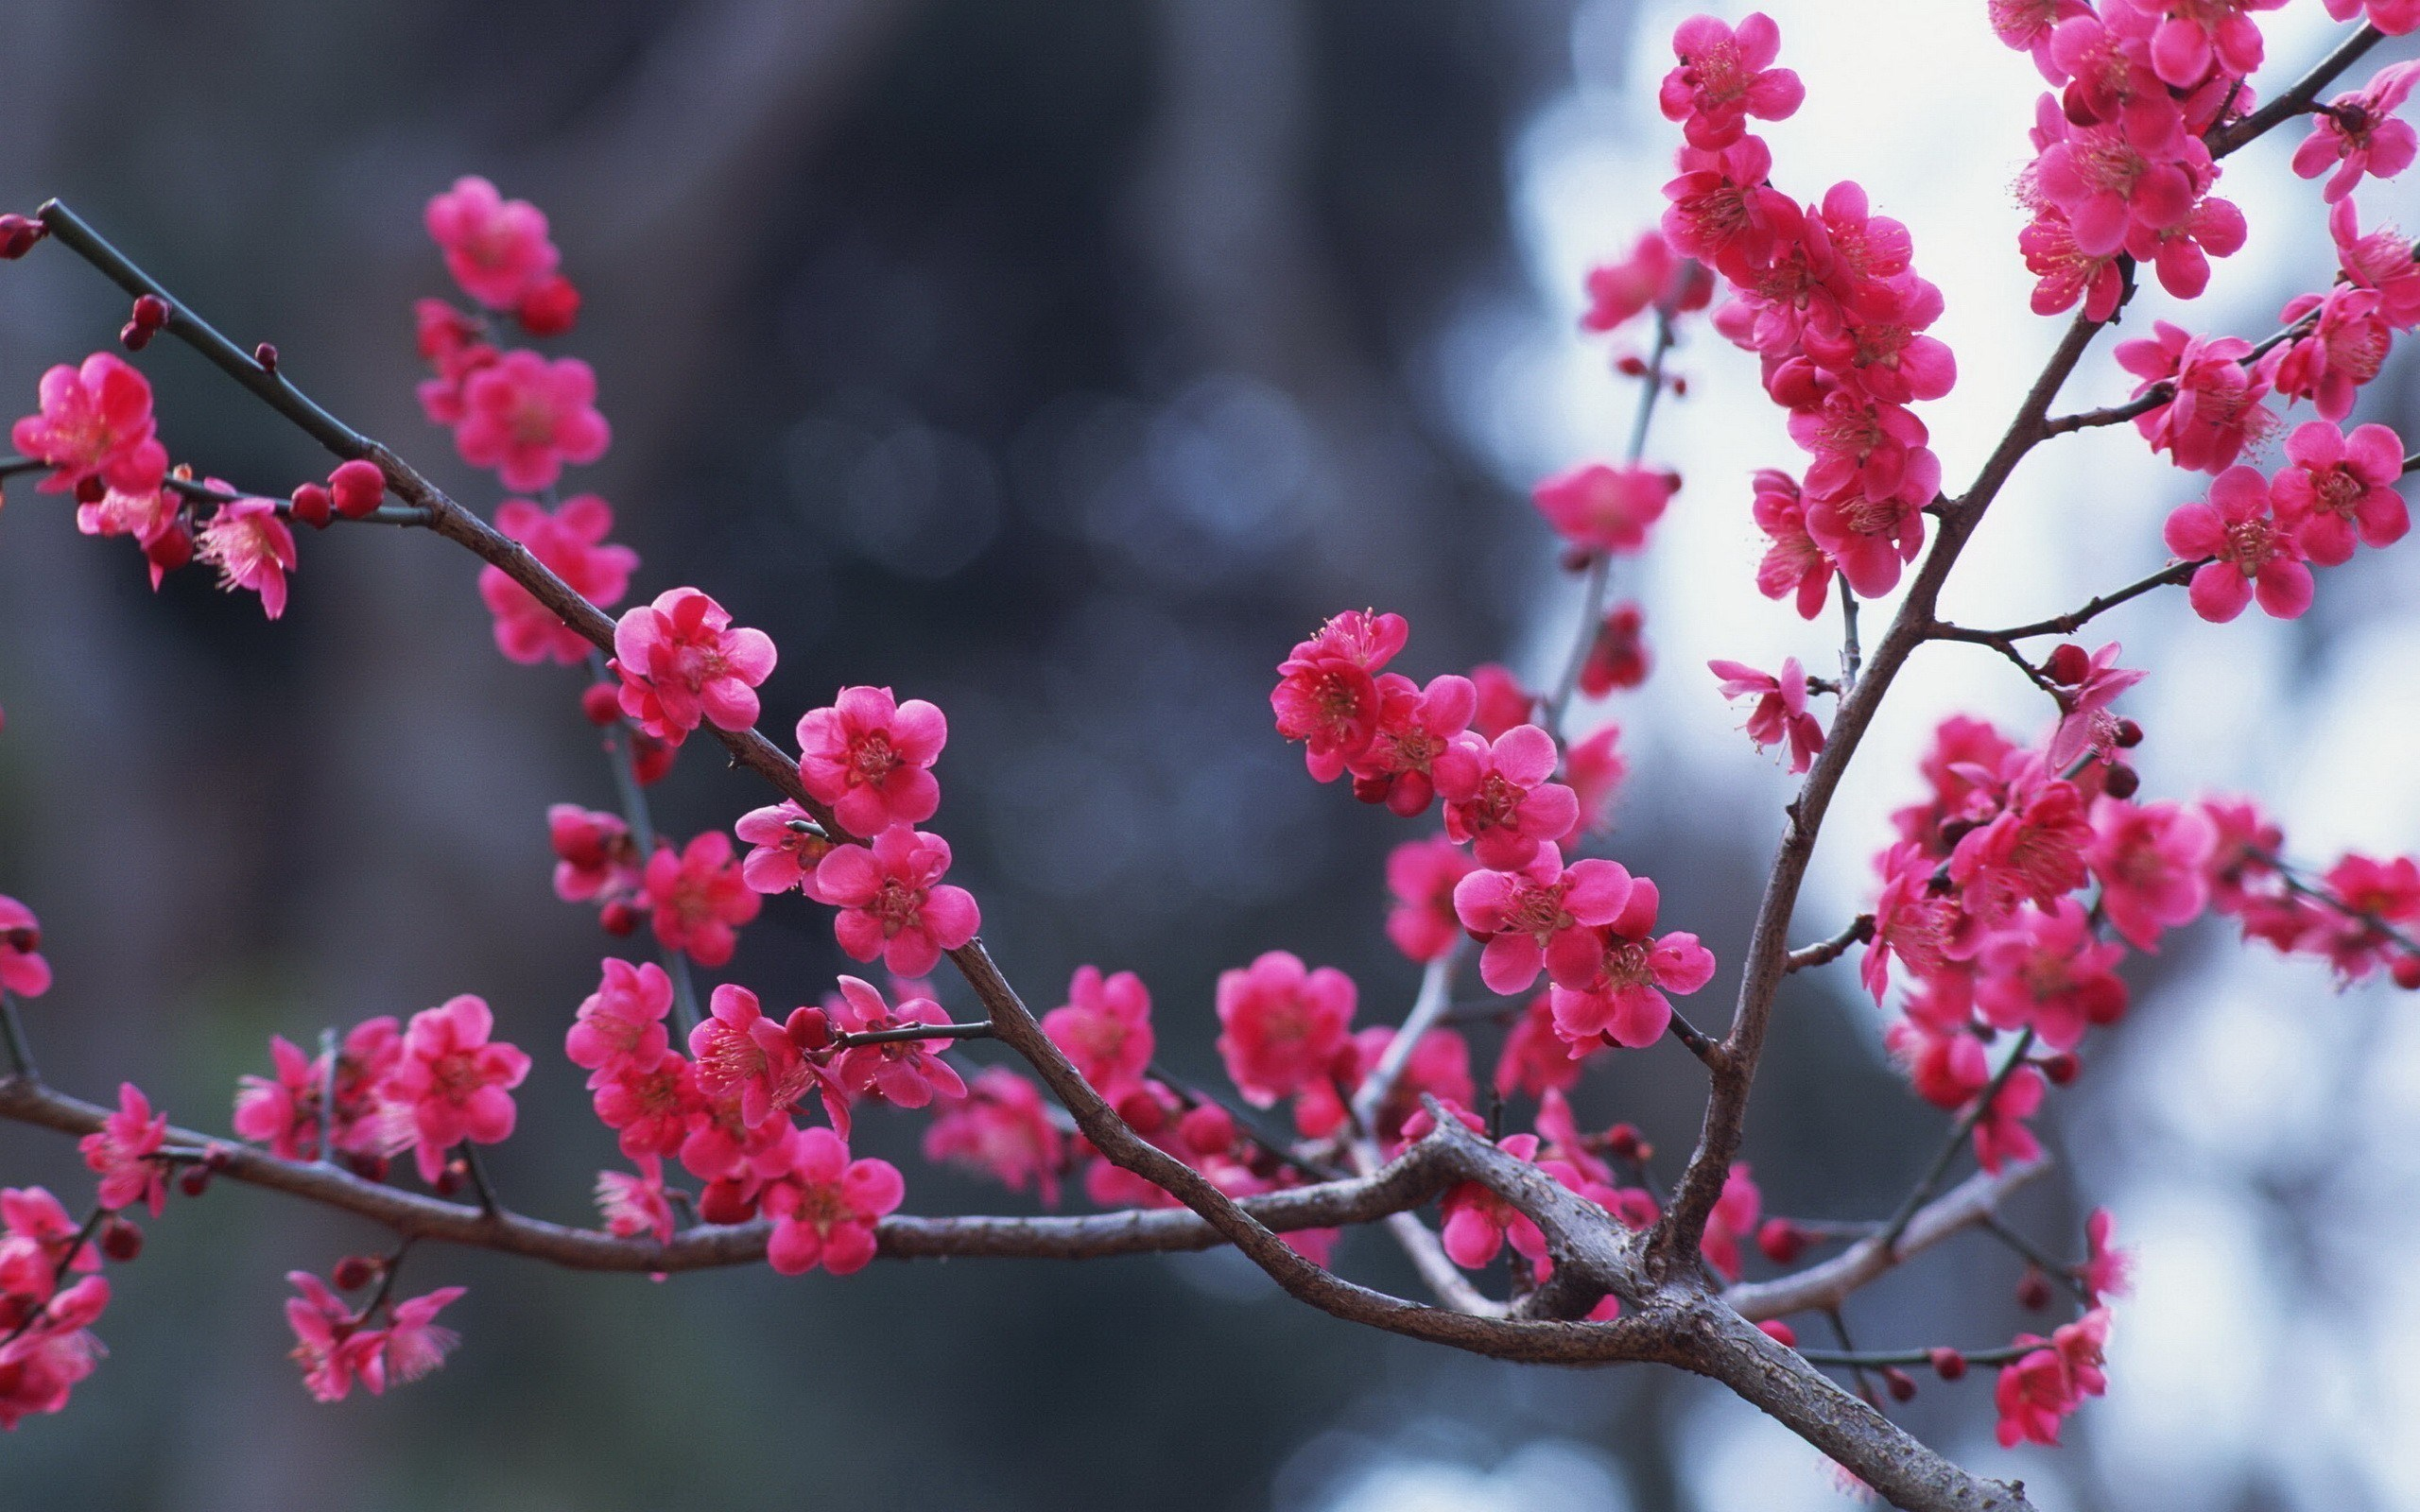 Spring Nature Wallpaper with branches pink flowerjpg 2560x1600